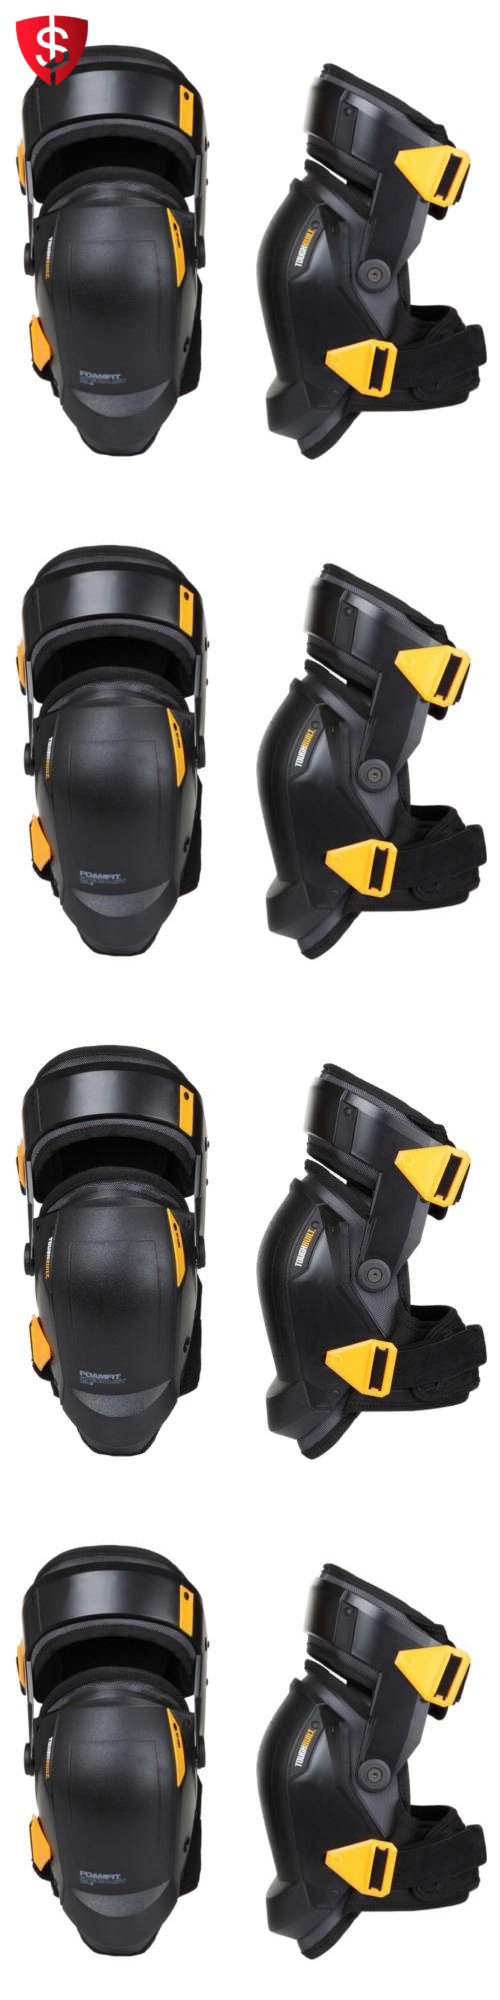 Gloves and pads knee pads construction work comfort